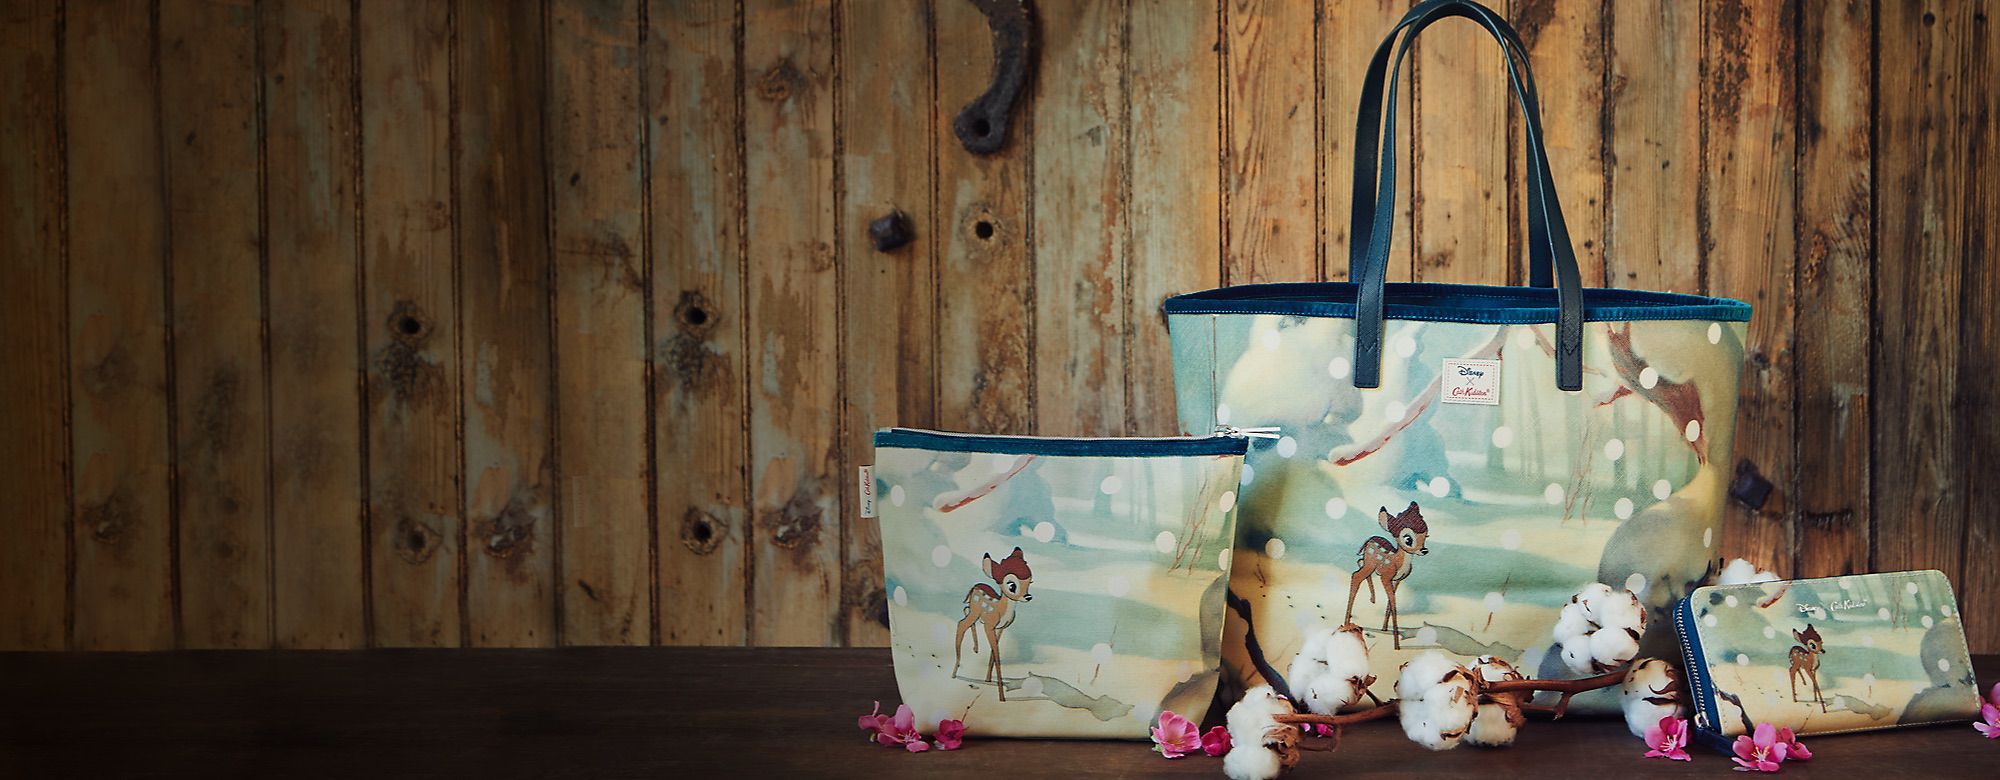 Cath Kidston x Disney Bambi collection  SHOP NOW